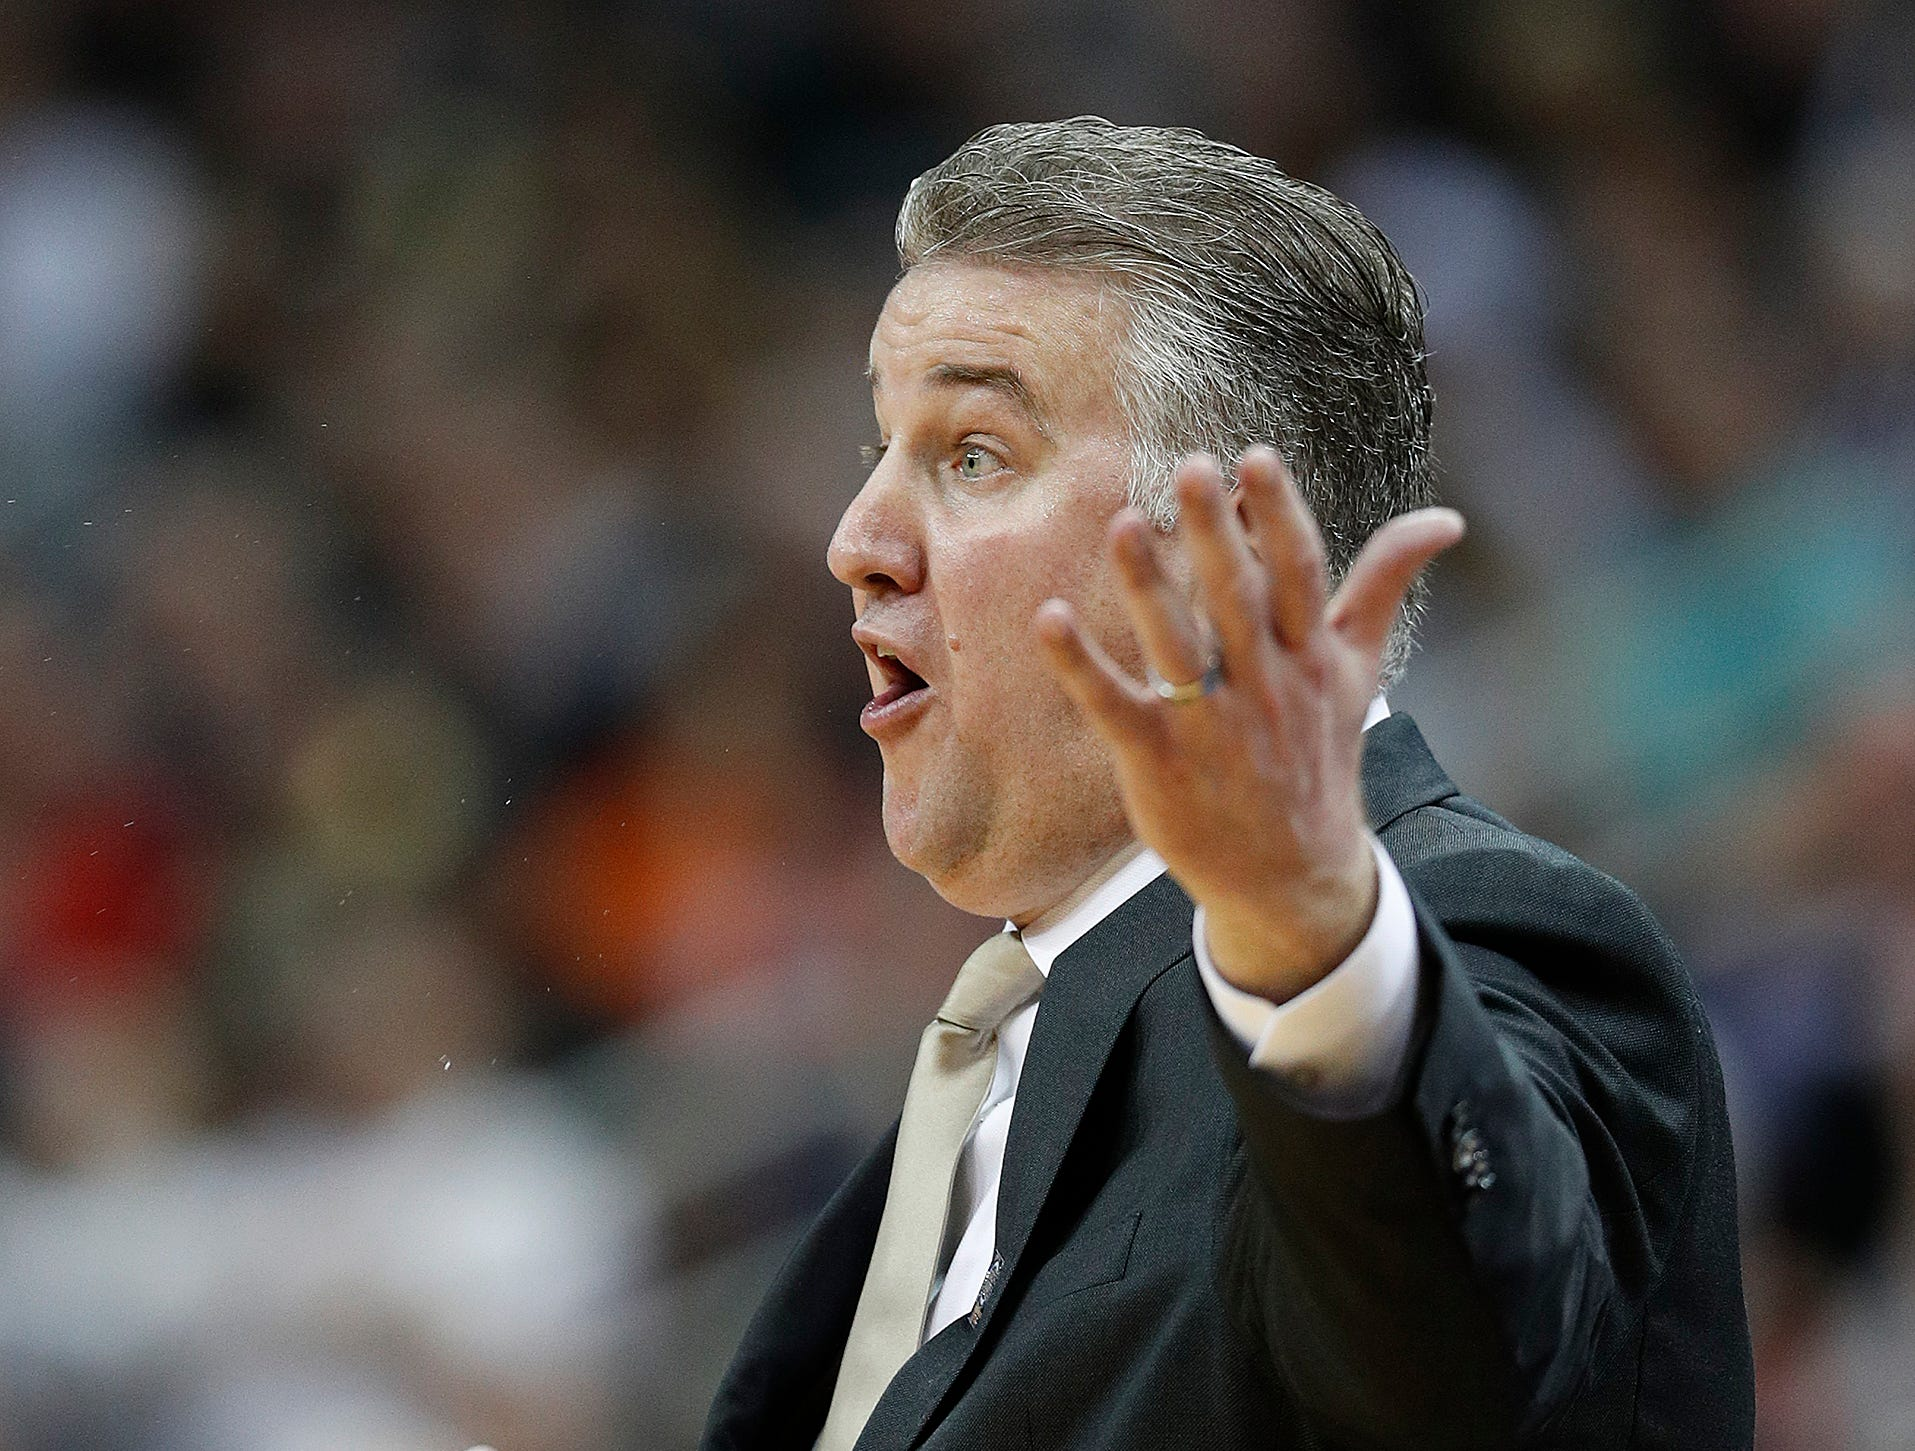 """Purdue Boilermakers head coach Matt Painter in the second half of their NCAA Division I Basketball Championship """"Elite 8"""" basketball game at the KFC Yum! Center in Louisville, KY., on Saturday, Mar 30, 2019. The Virginia Cavaliers defeated the Purdue Boilermakers 80-75."""